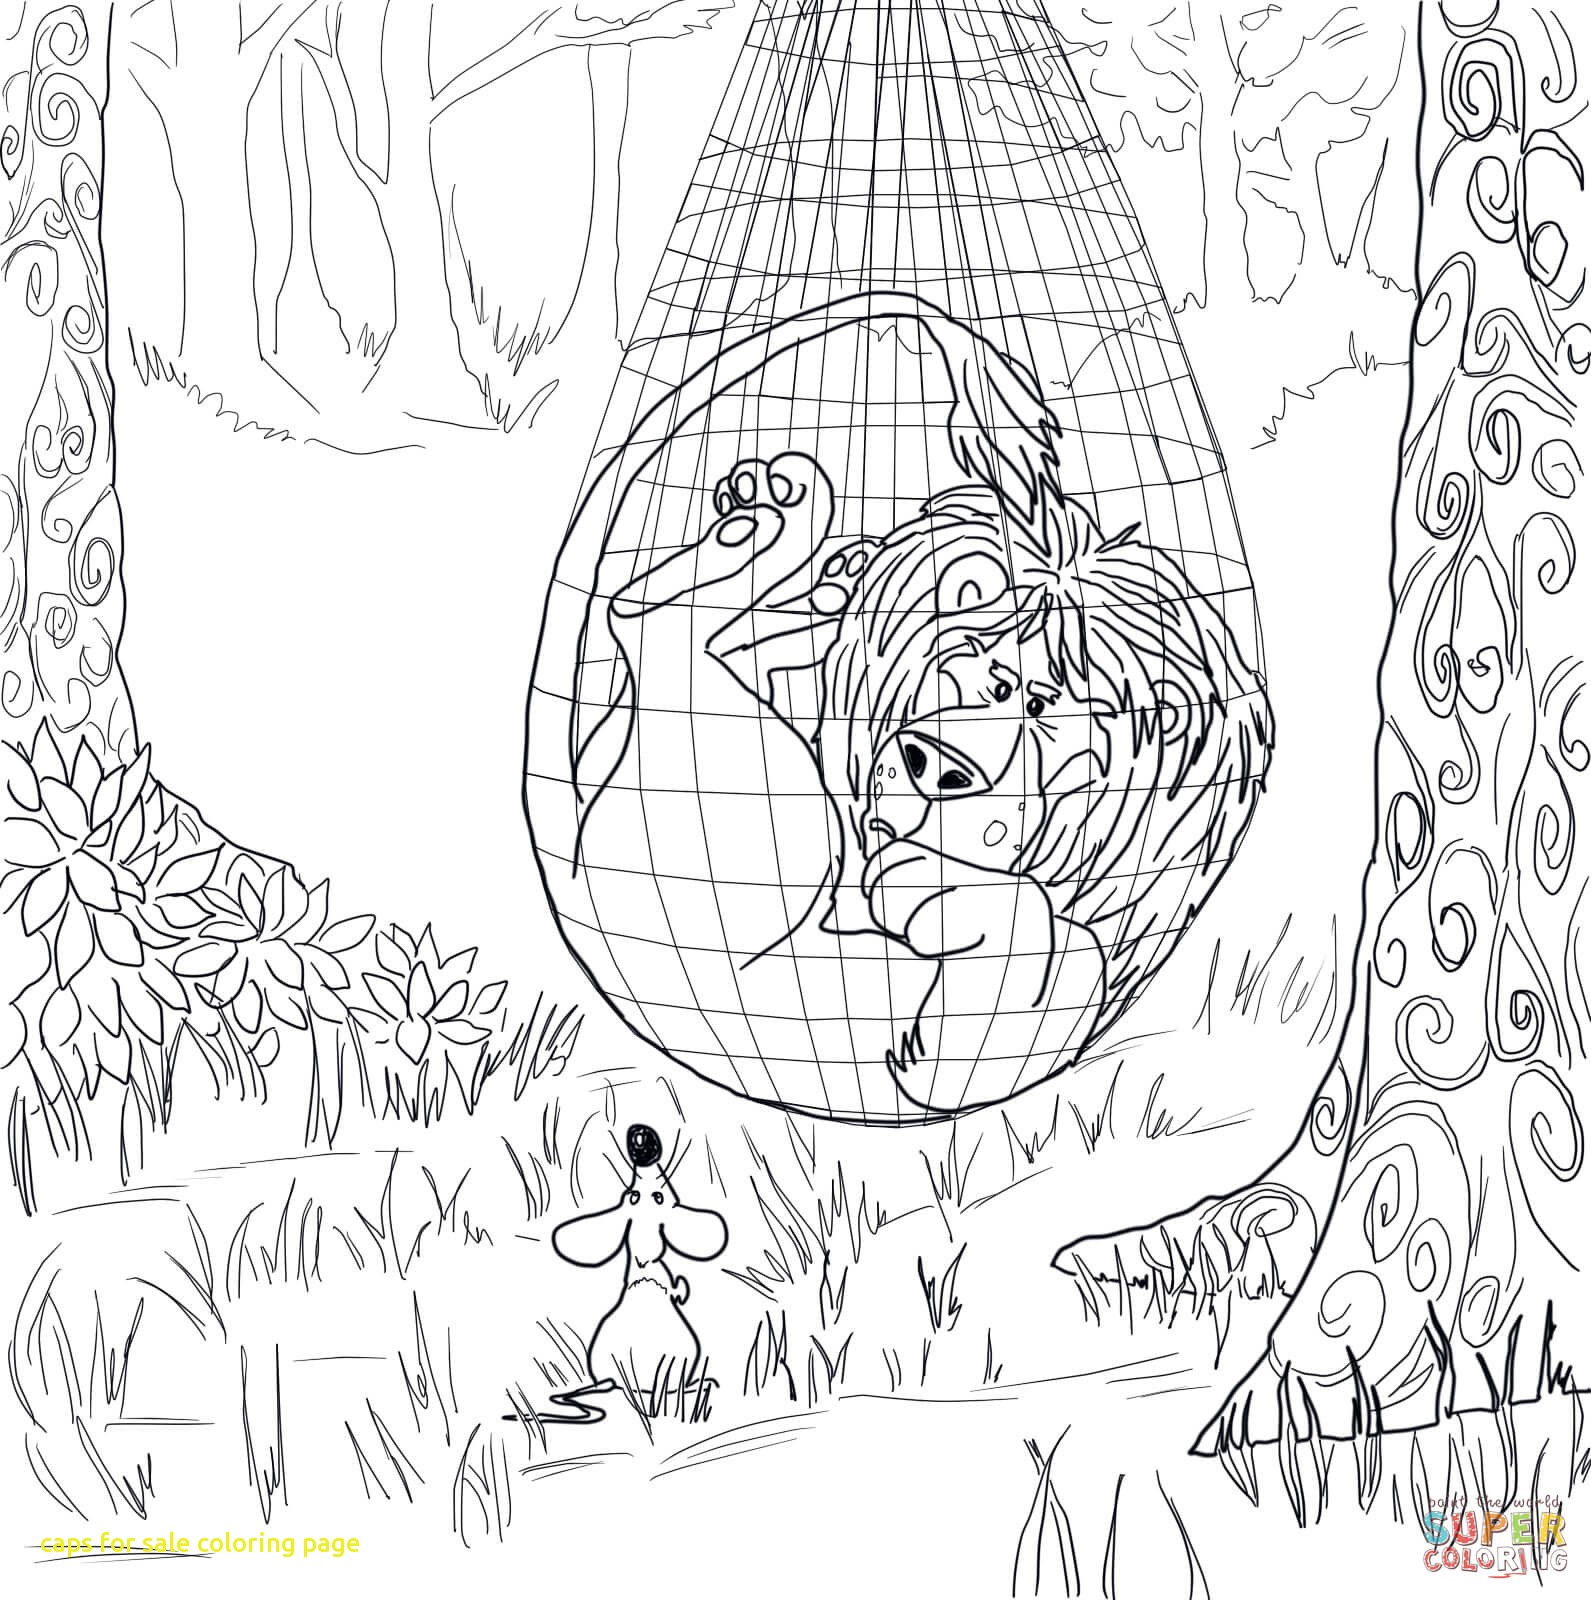 1591x1600 Caps For Sale Coloring Page With The Lion Trapped In The Net